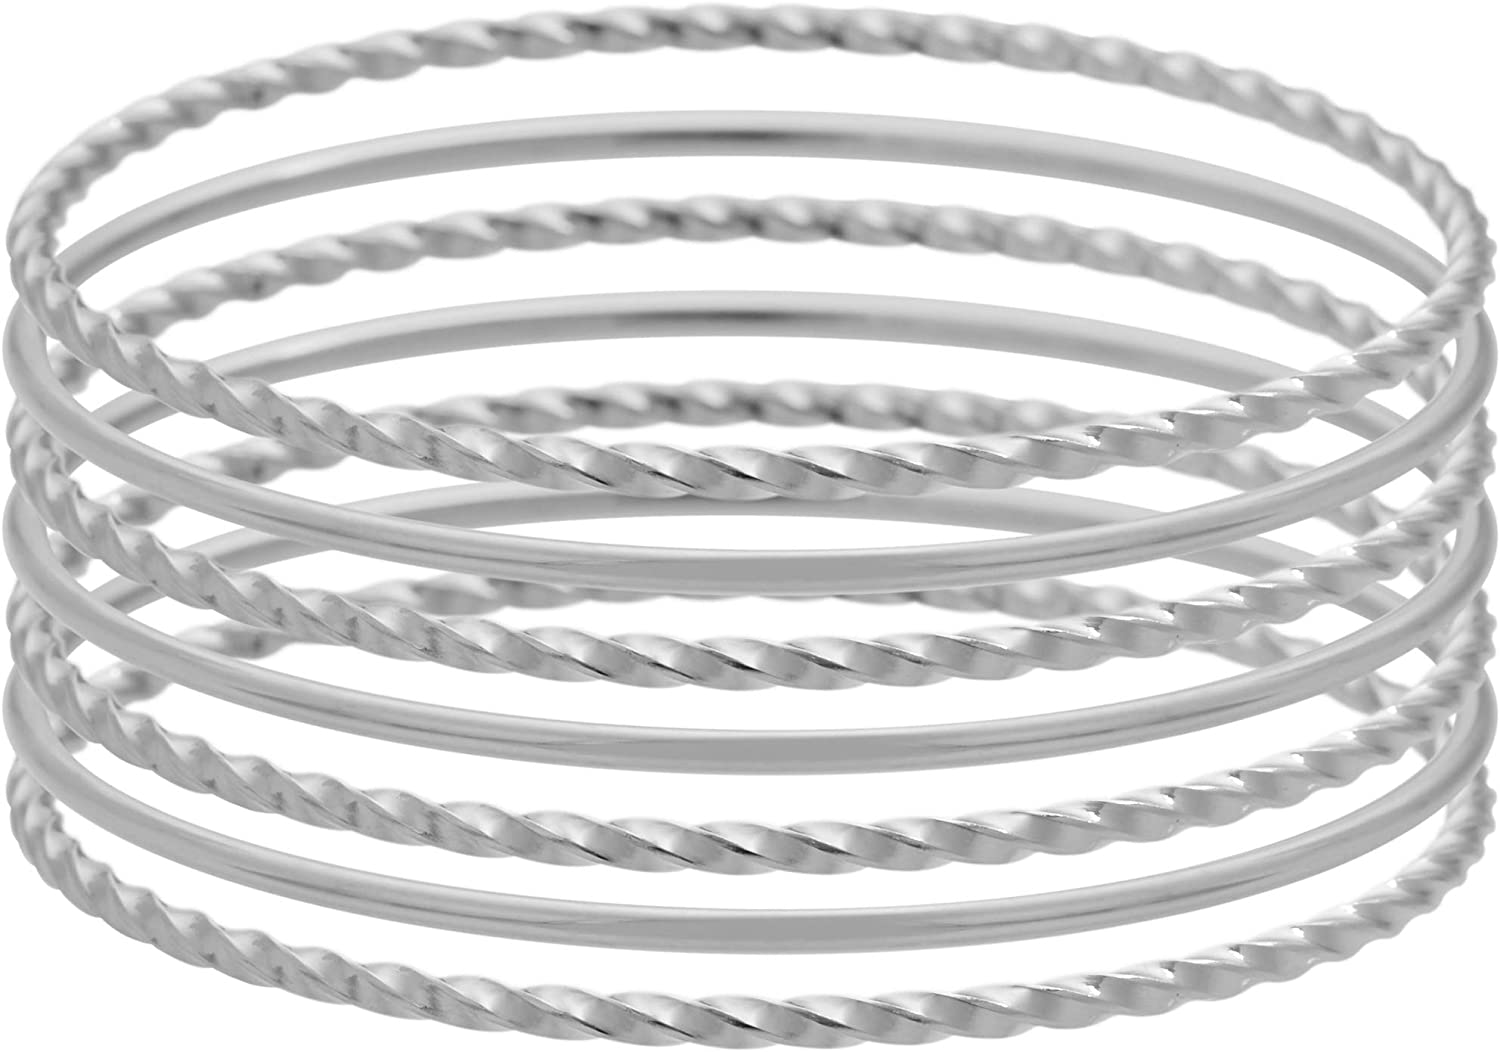 Edforce Stainless Steel Women's Twisted Thin Round Stackable Bangle Bracelet, Set of 7